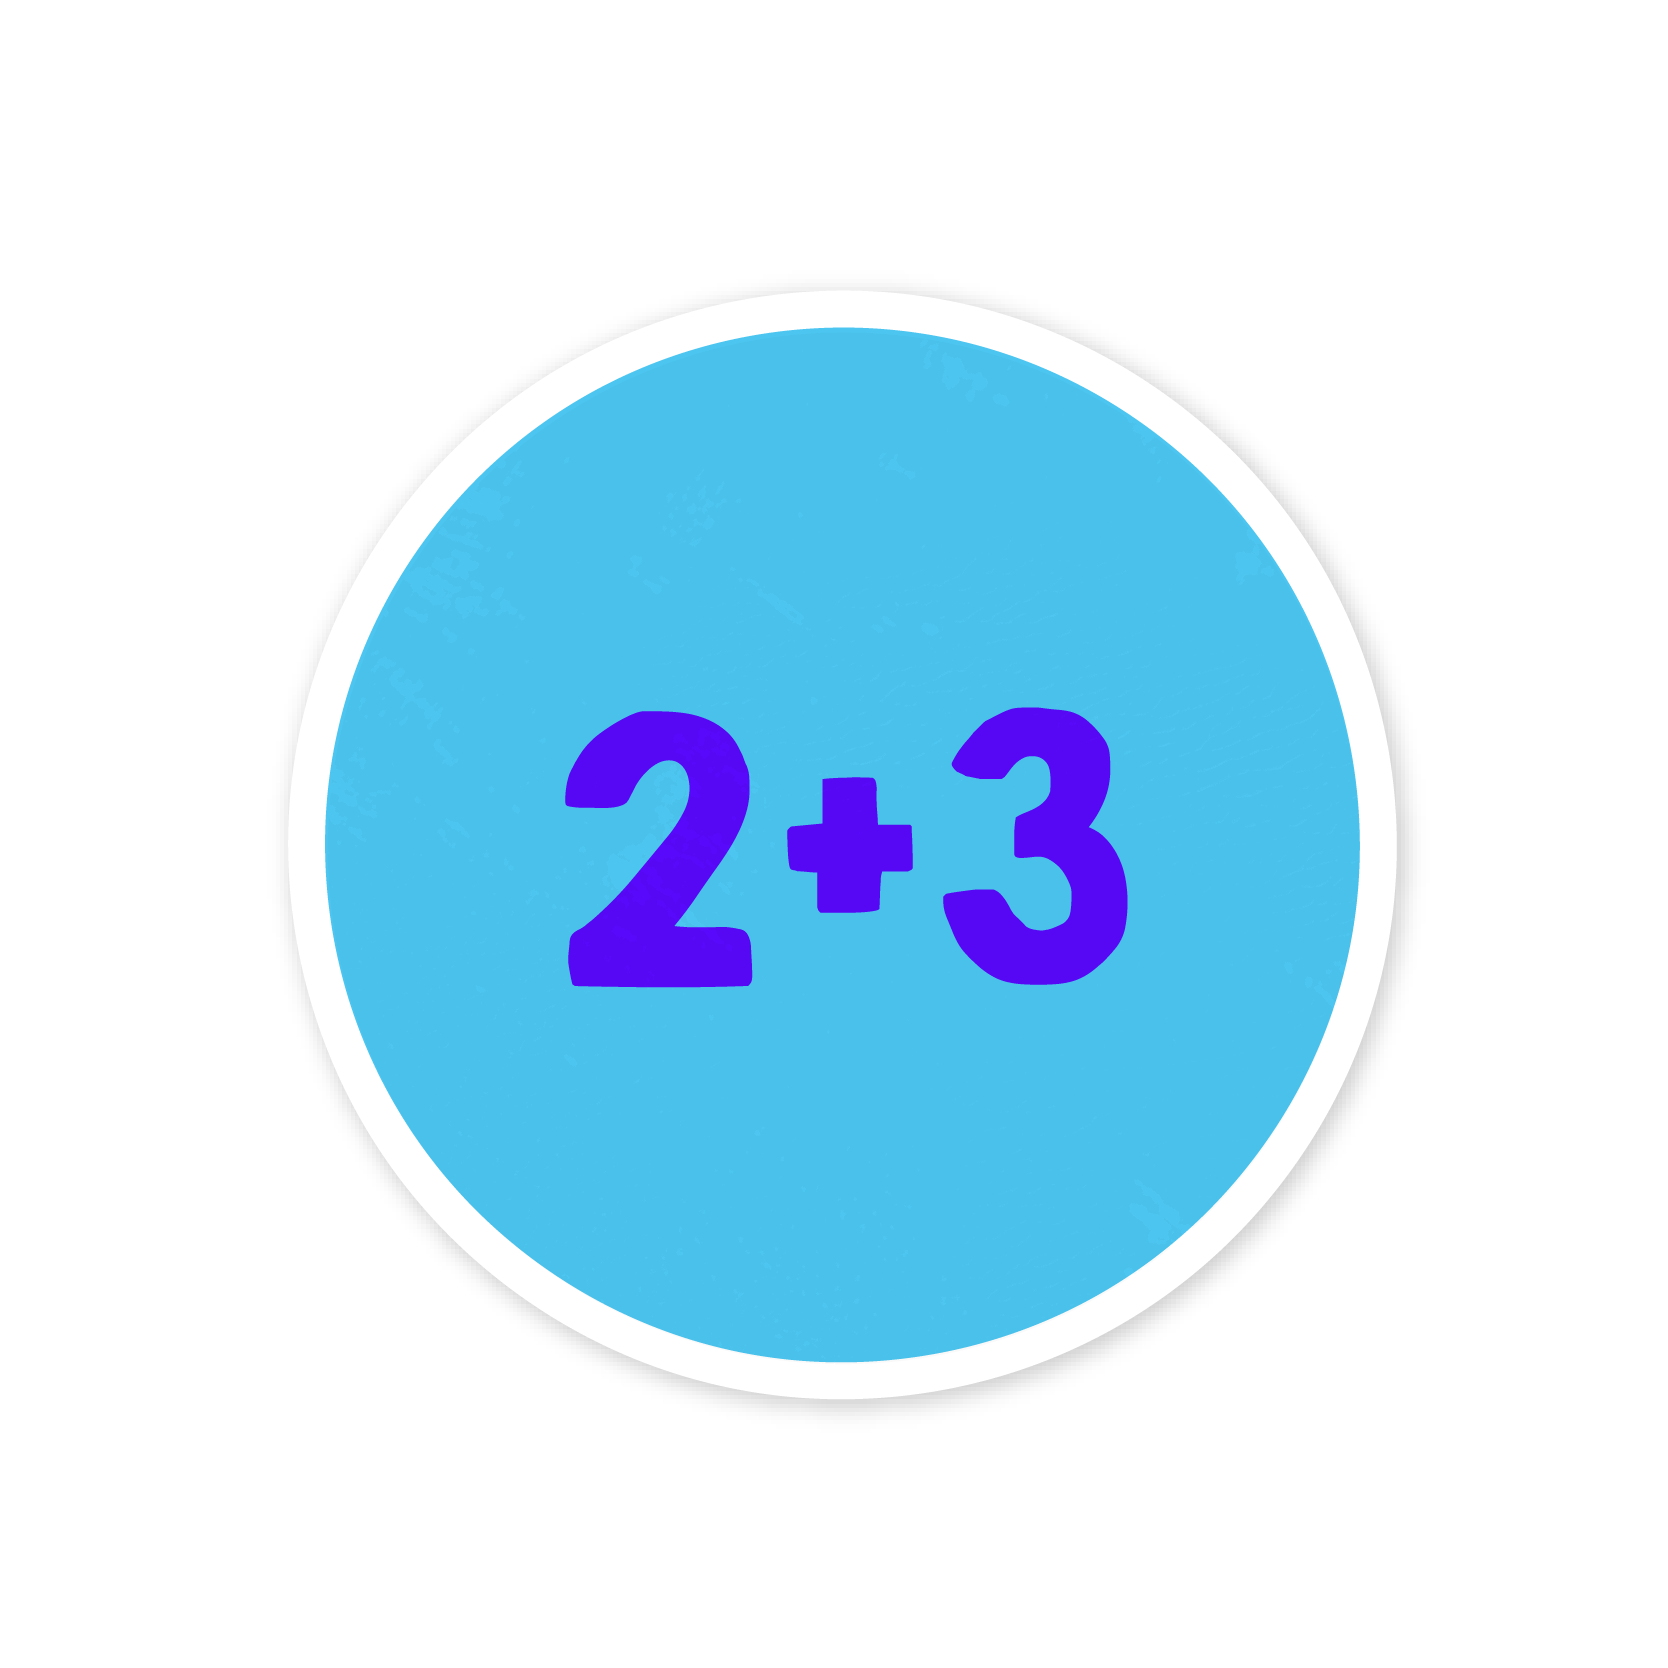 A blue sticker that says '2+3'